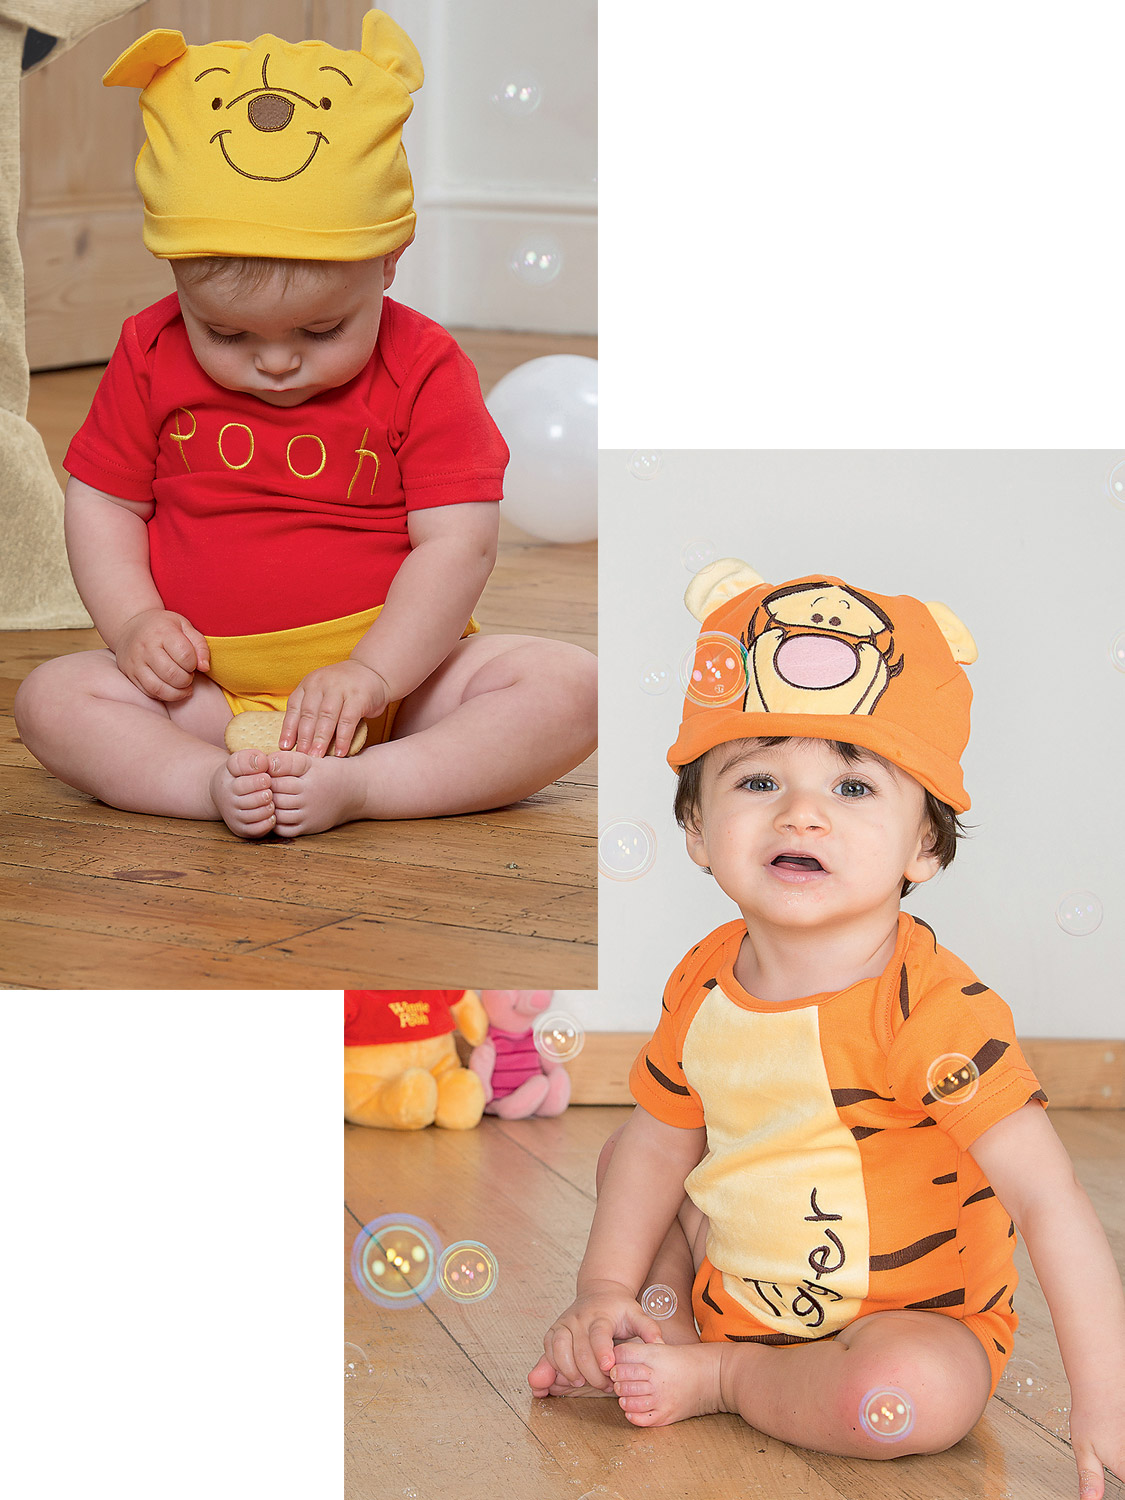 249d89af4 Details about Disney Baby Winnie the Pooh Bodysuit + Hood Outfit Toddler  Fancy Dress Costume